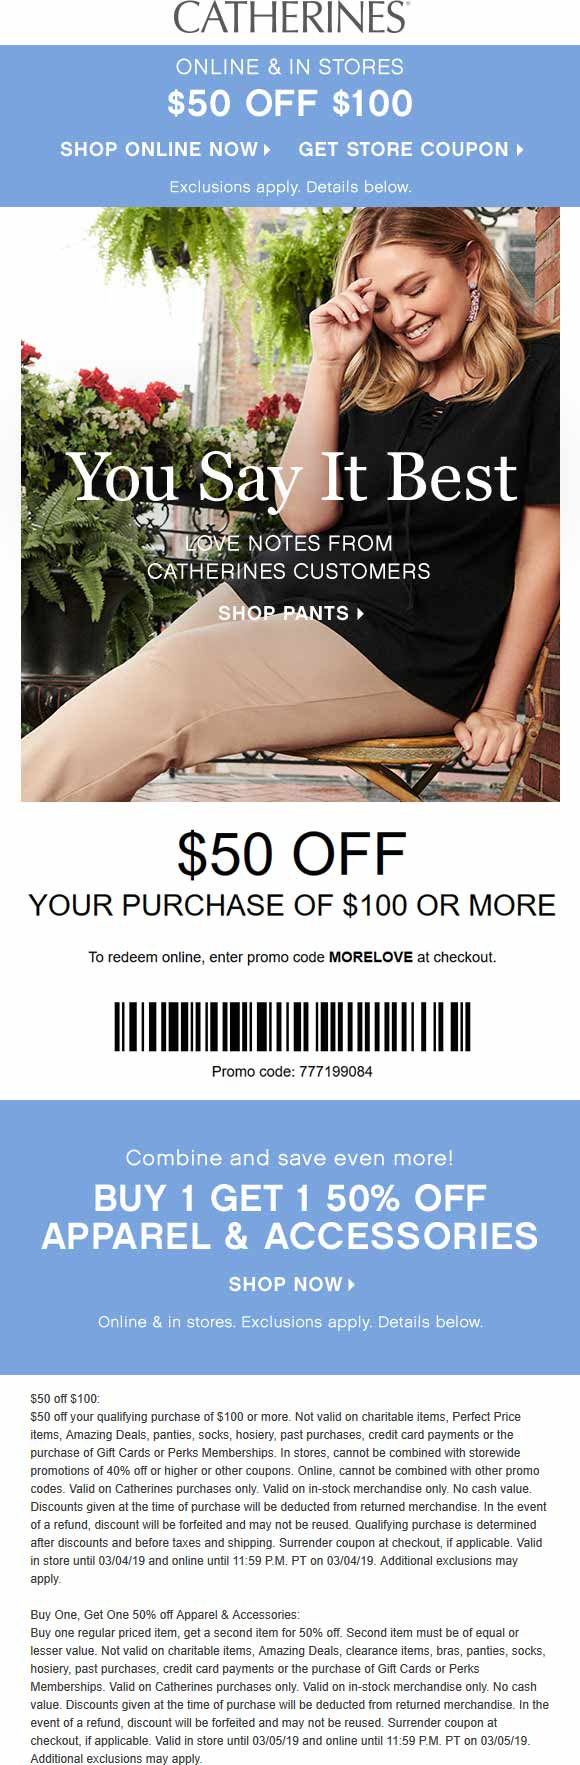 Catherines Coupon May 2019 $50 off $100 today at Catherines, or online via promo code MORELOVE